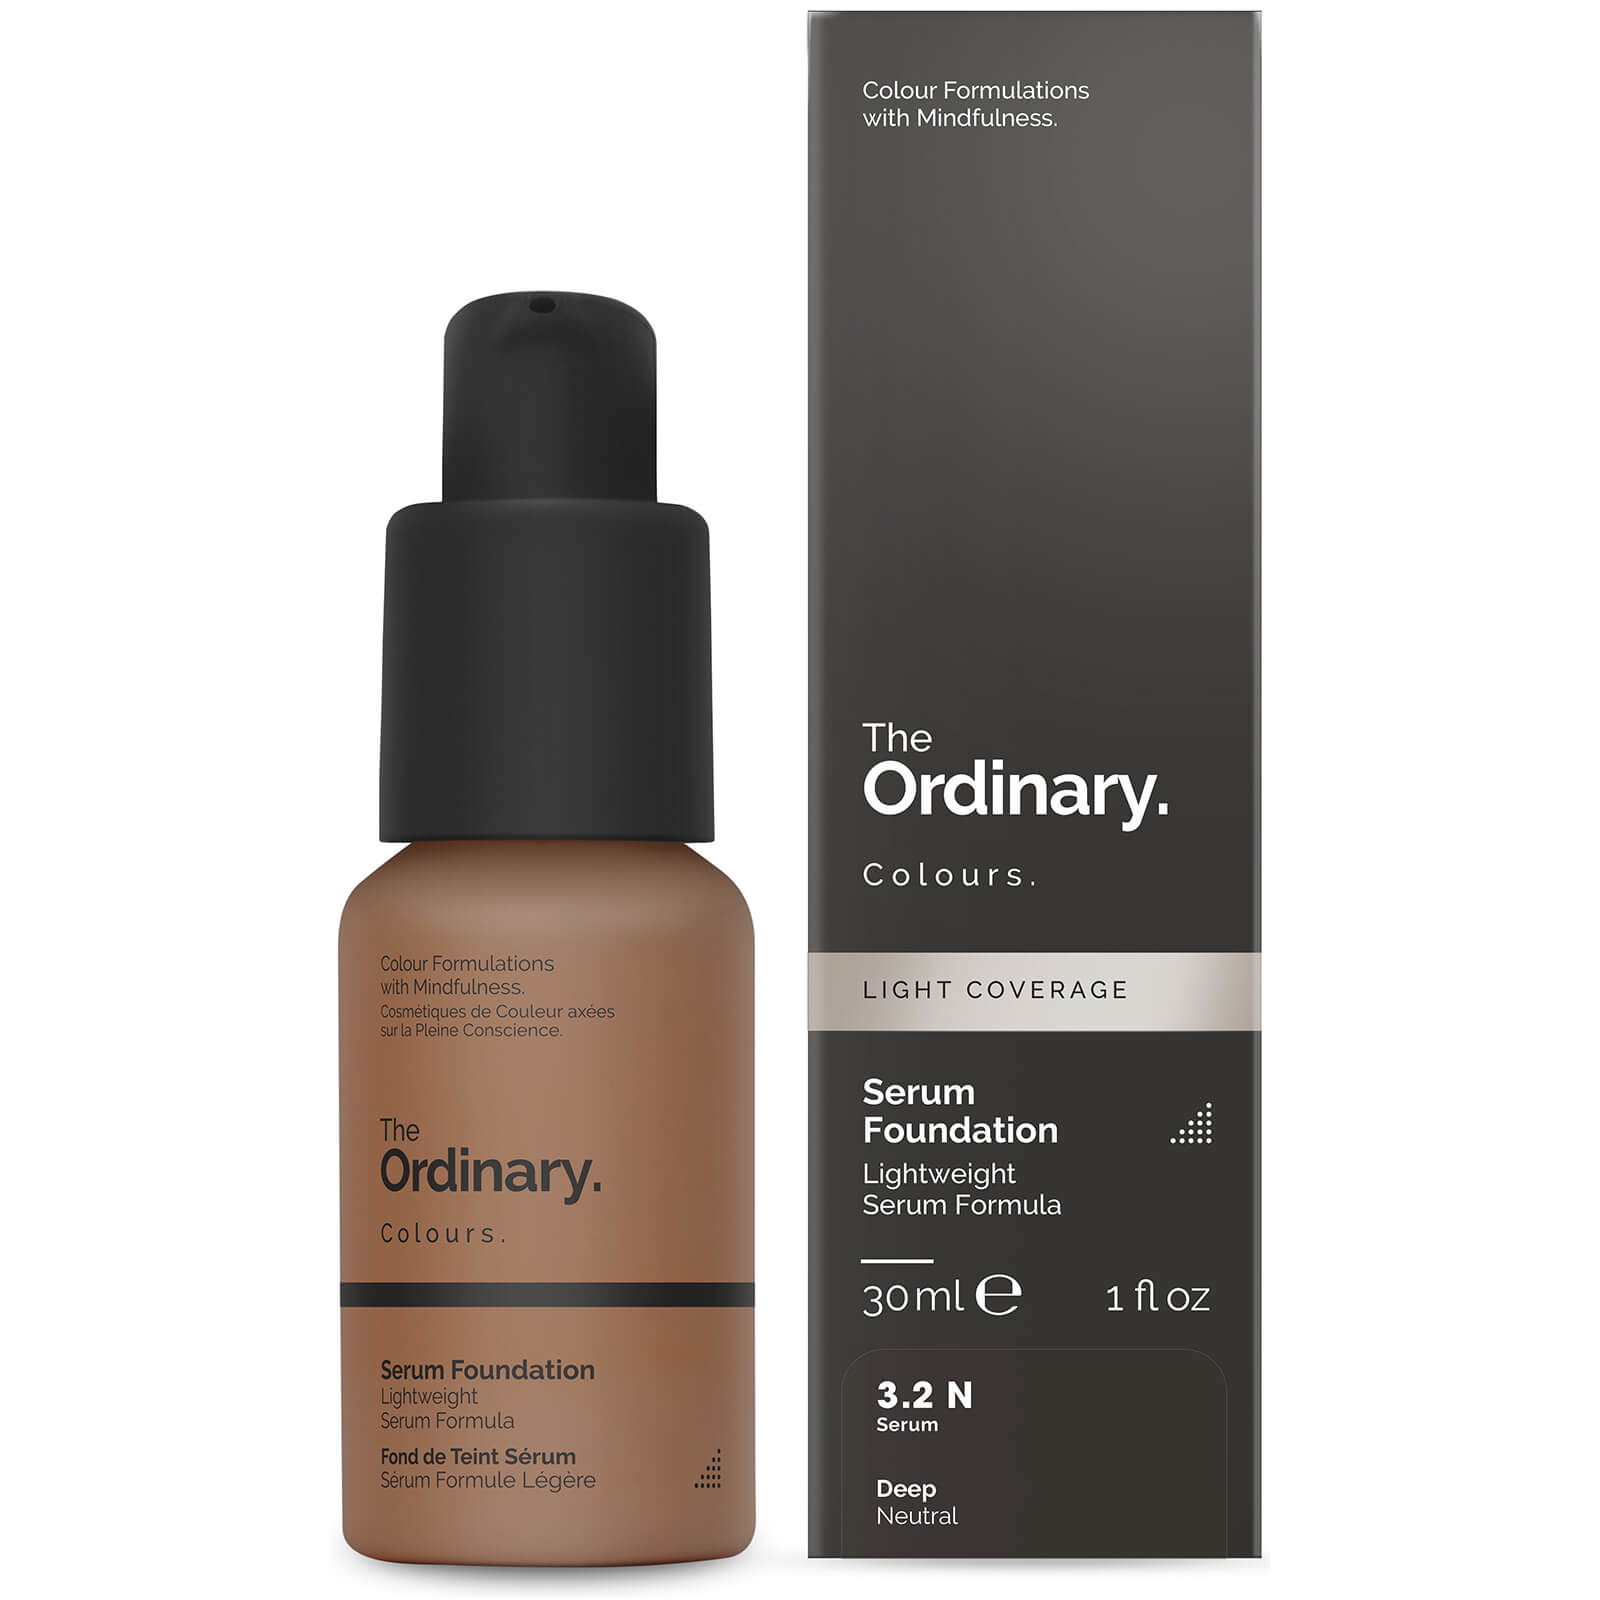 The Ordinary Serum Foundation with SPF 15 by The Ordinary Colours 30ml (Various Shades) - 3.2N